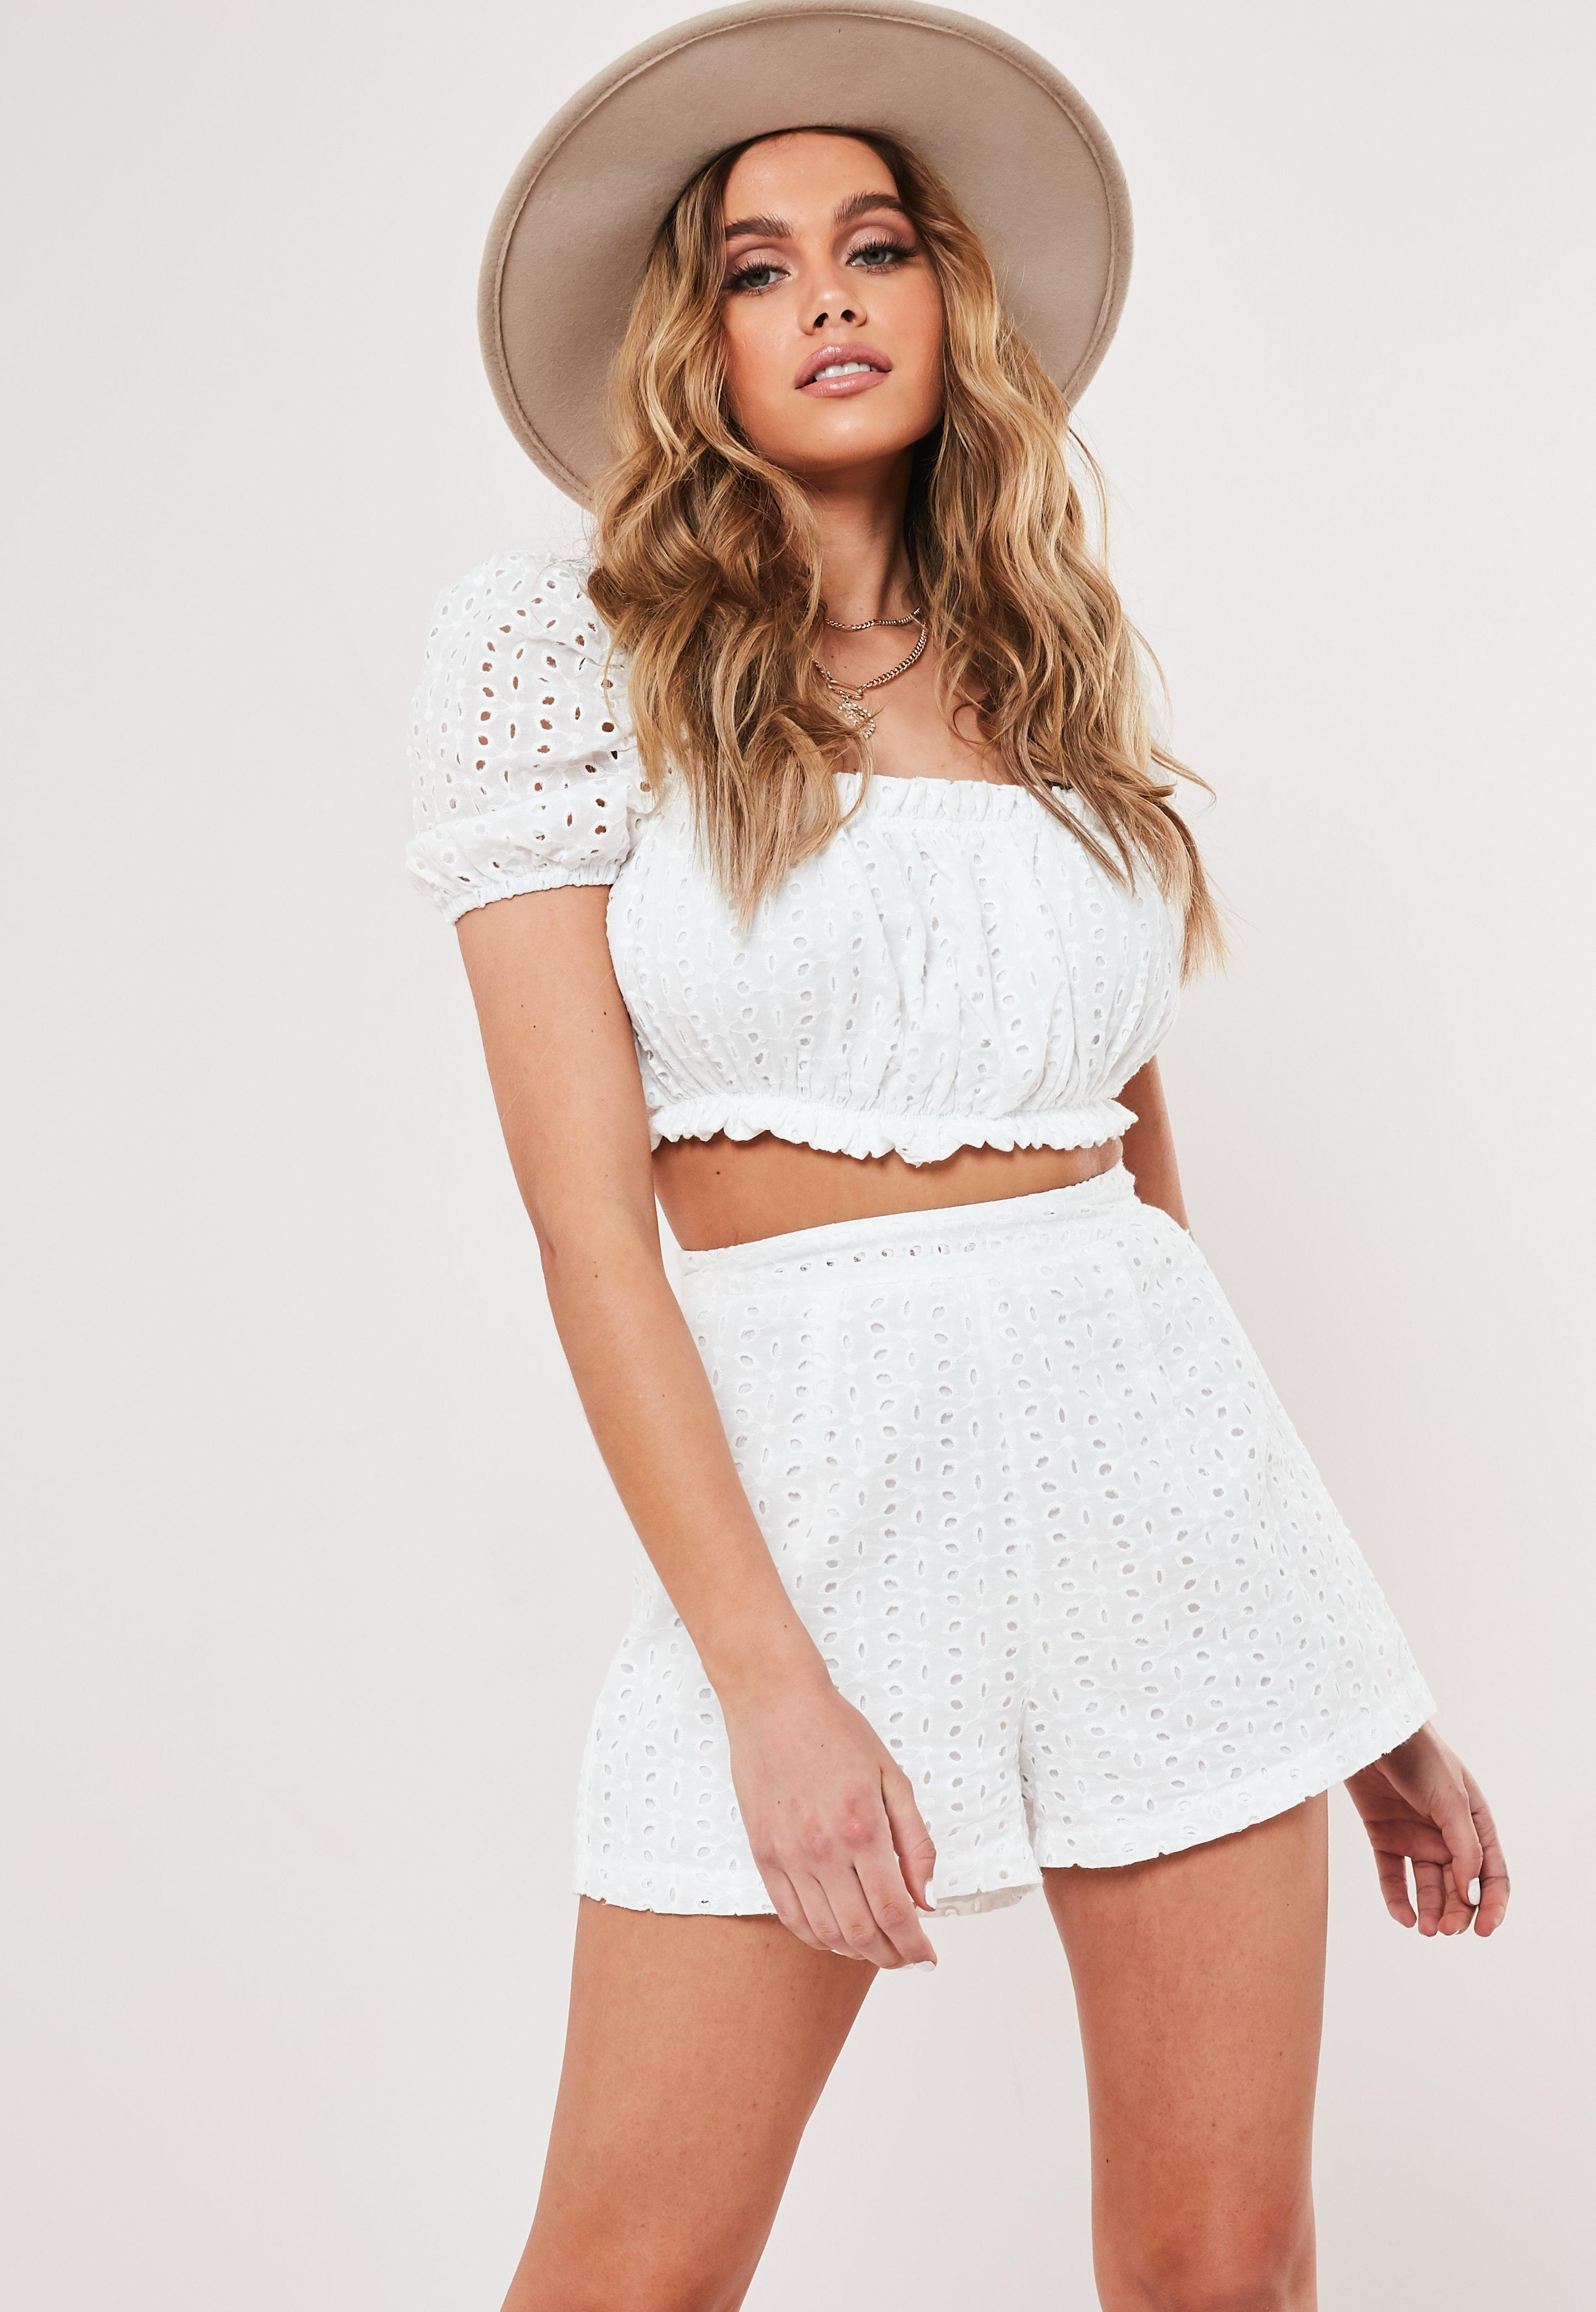 aab485b9af5 Co-ords - Two Piece Outfits - Co-ord Sets - Missguided